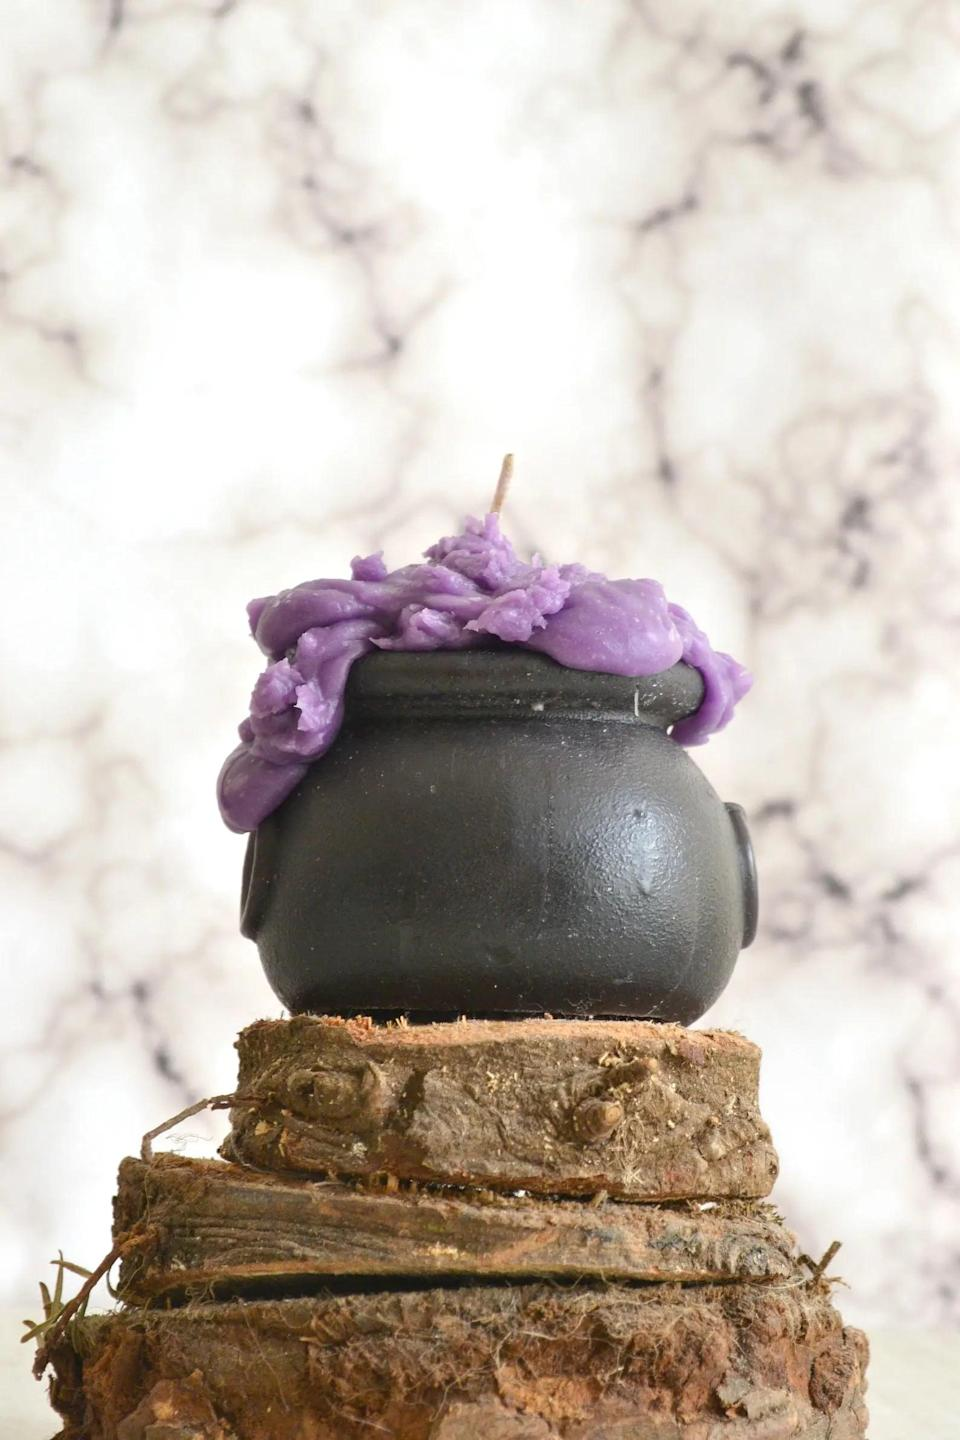 """<p>This <span>Witches Cauldron Candle</span> ($10) pairs nicely with <a class=""""link rapid-noclick-resp"""" href=""""https://www.popsugar.com/Halloween"""" rel=""""nofollow noopener"""" target=""""_blank"""" data-ylk=""""slk:Halloween"""">Halloween</a> witch decor. Watch as the Berry Bewitching Brew begins to bubble once lit to a flame. </p>"""